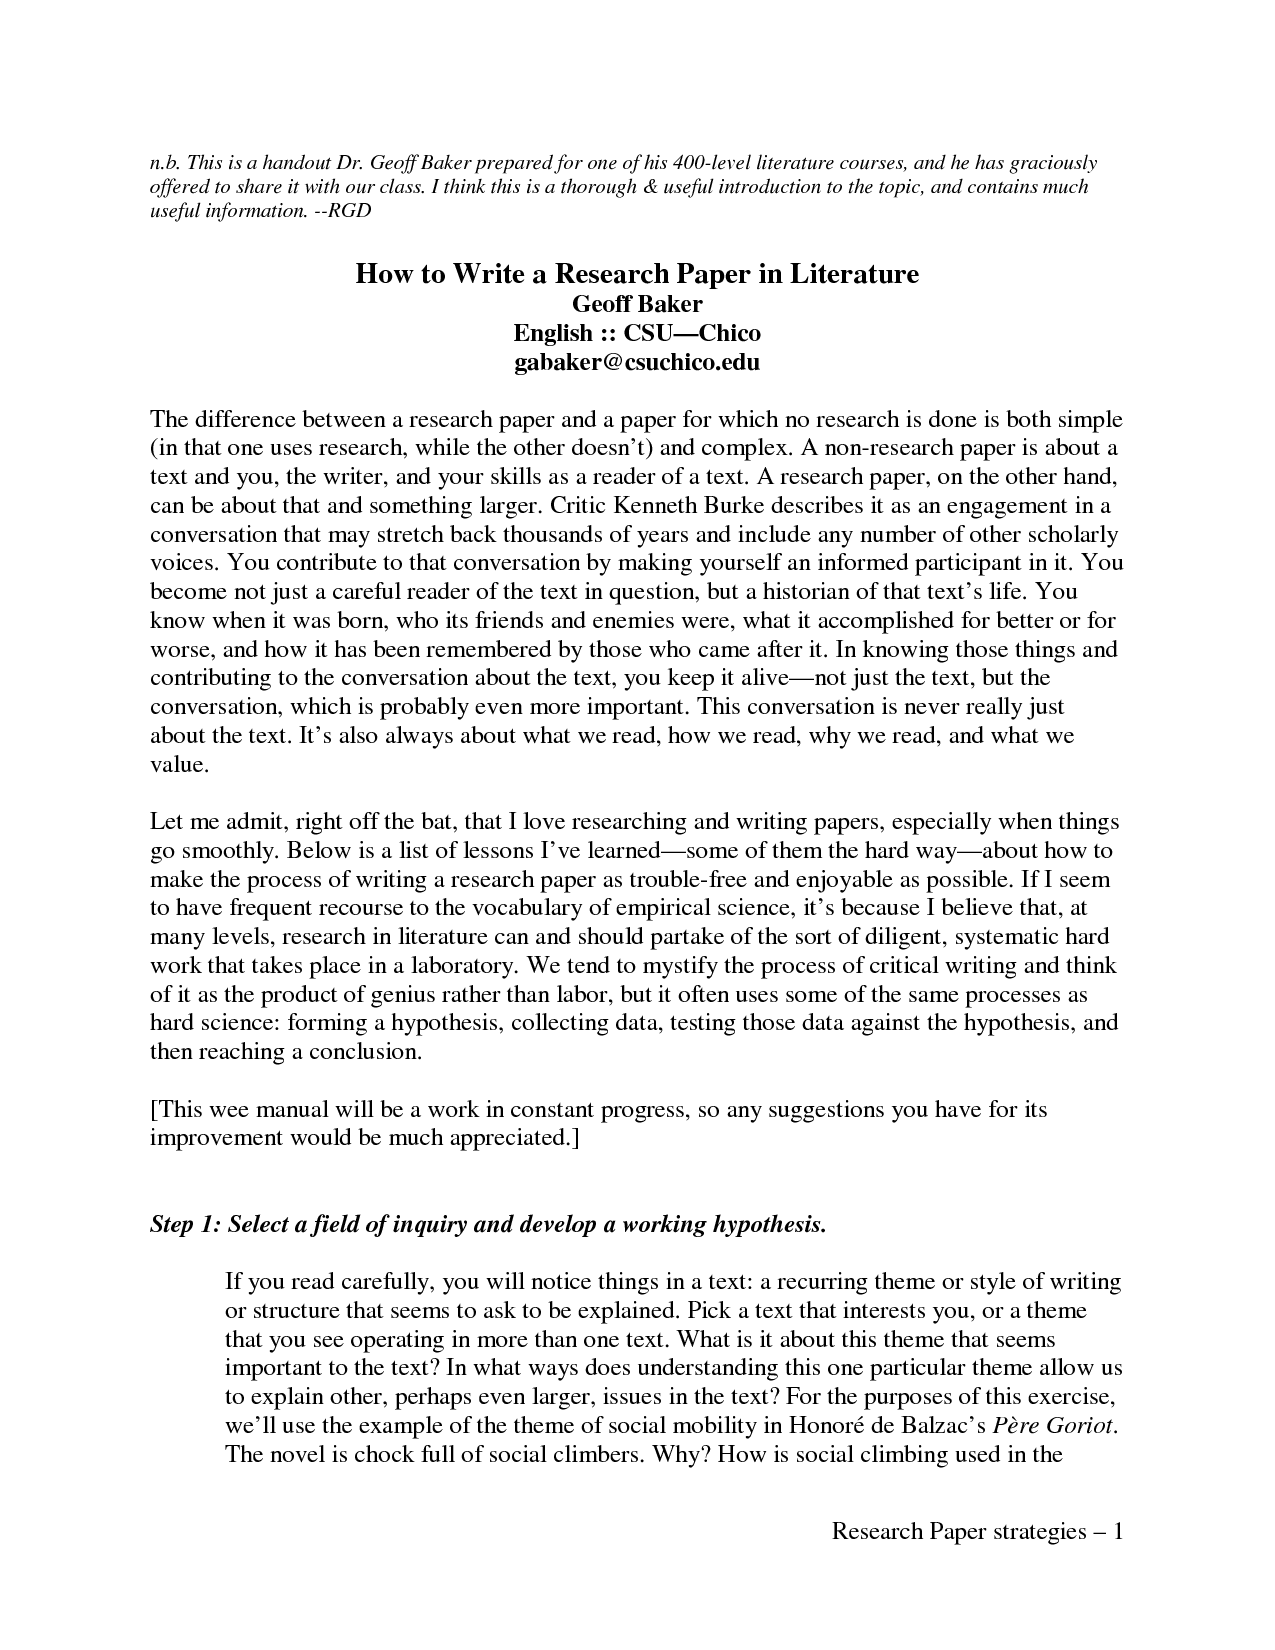 Most memorable experience essay